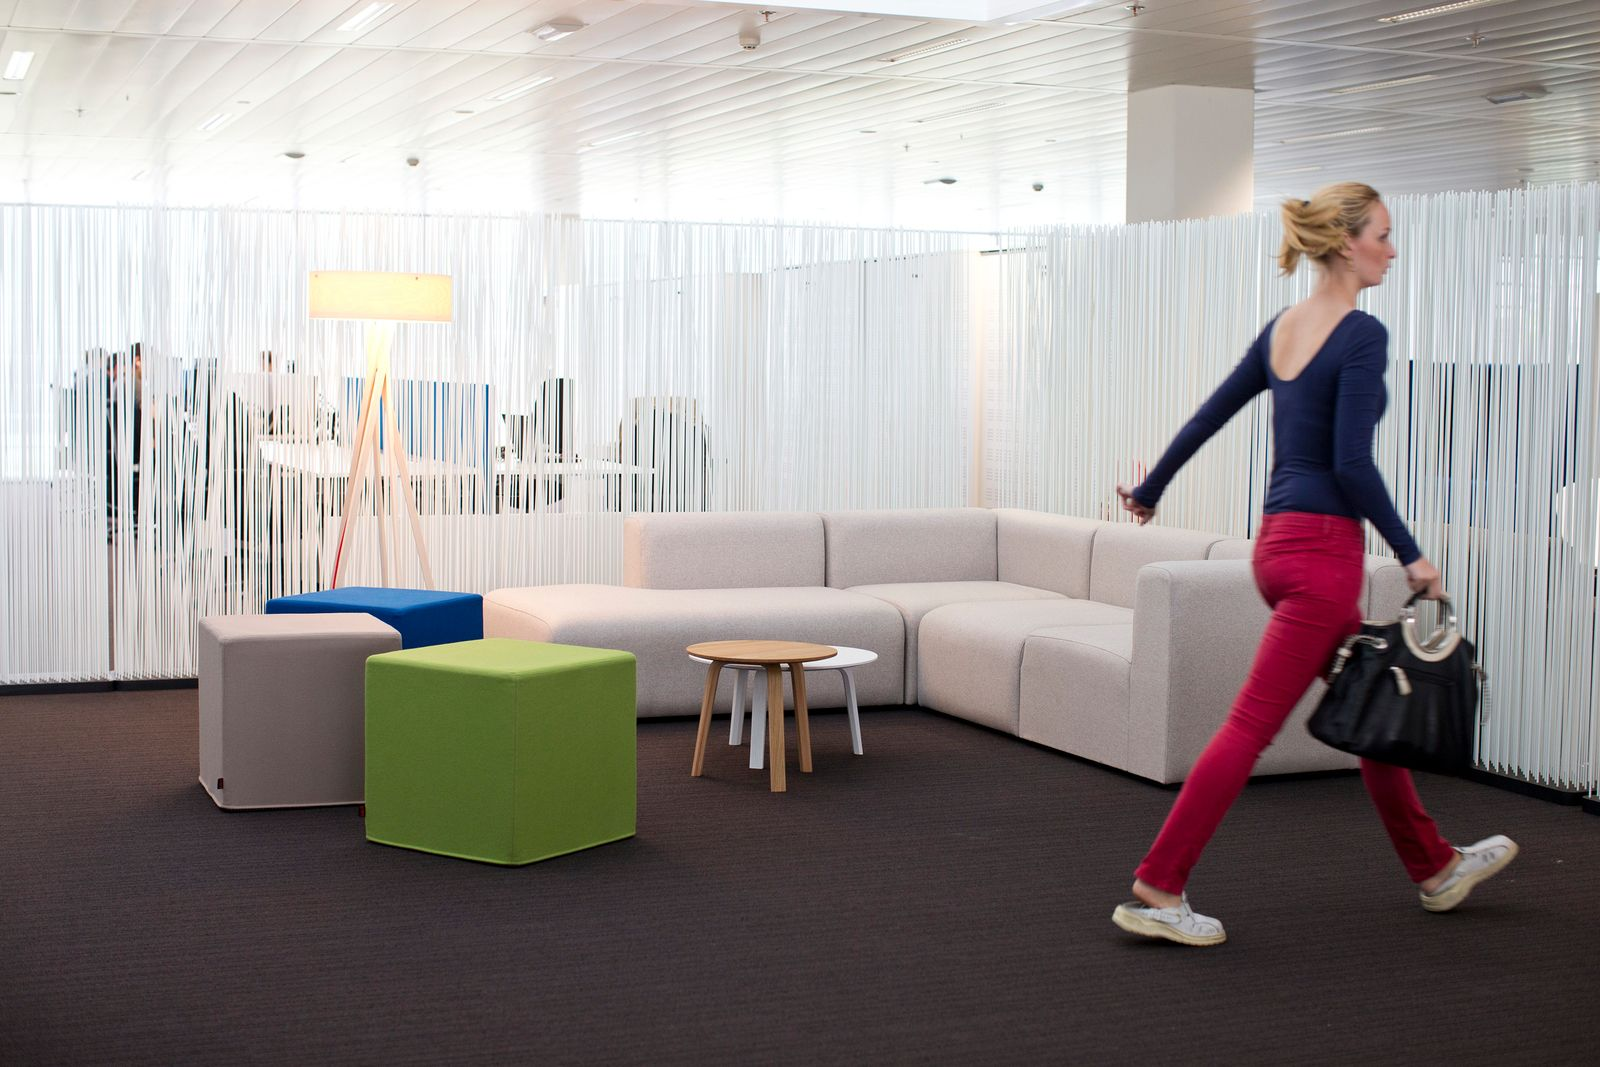 Melexis' innovative workplace